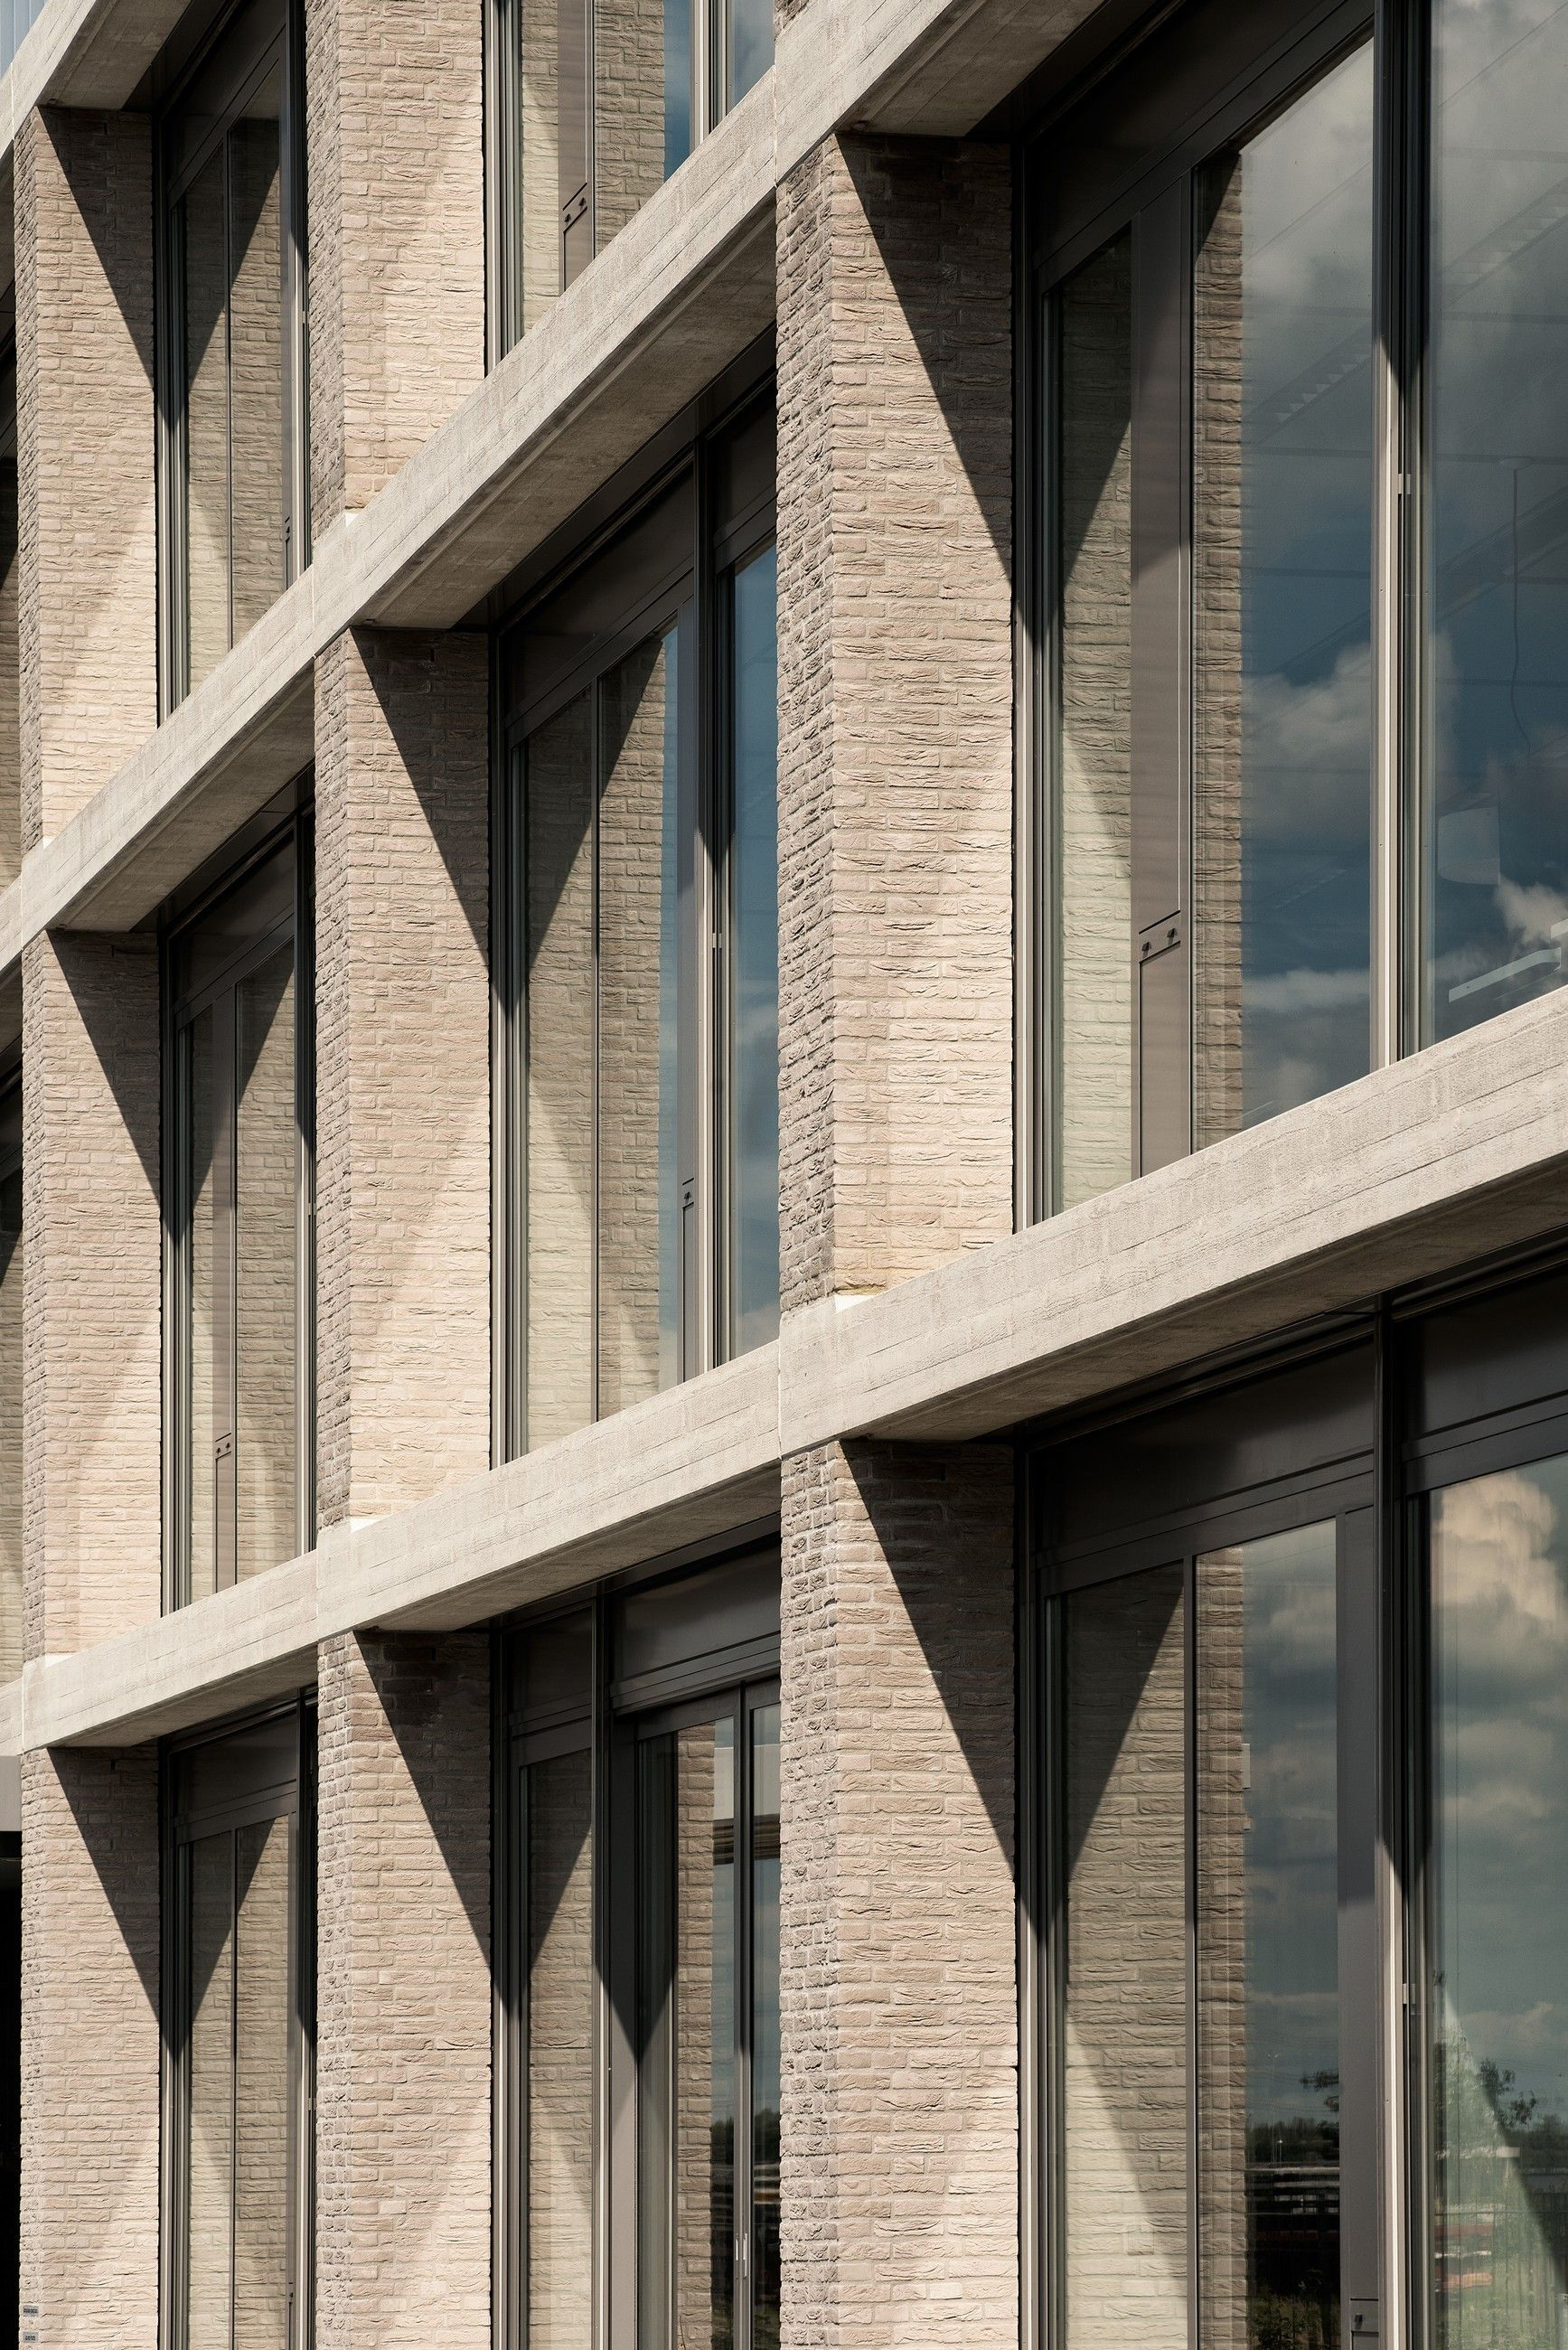 Buff brick rhythmic facade with depth and shadow and for Window design cement